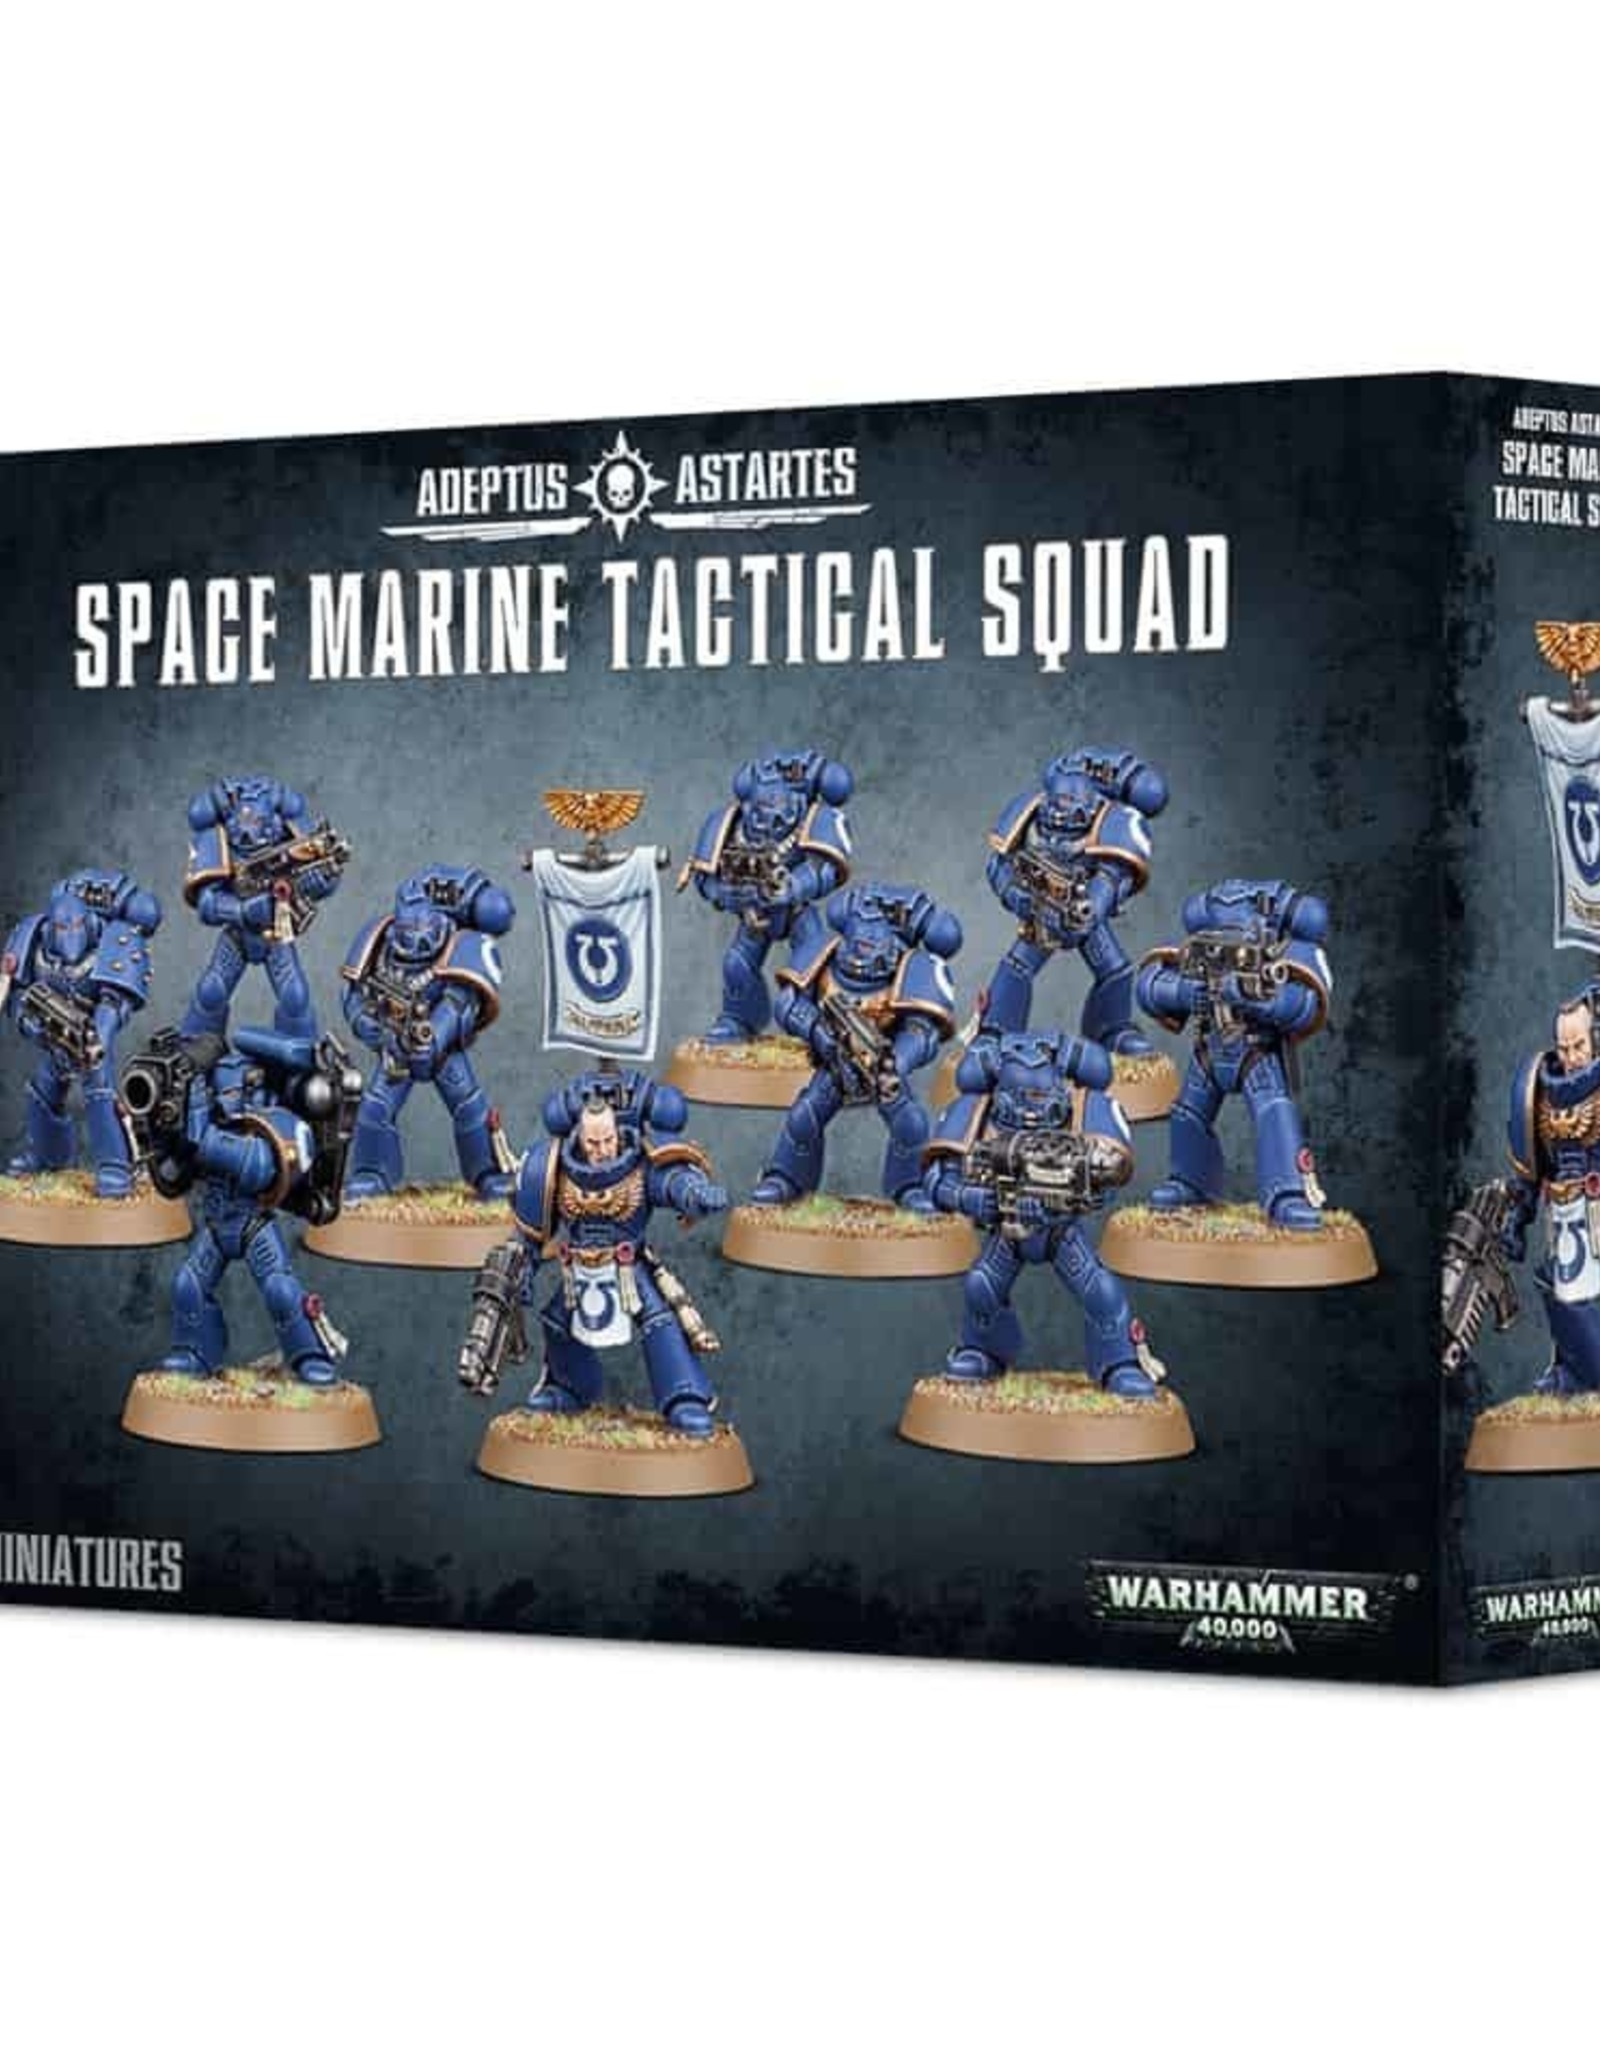 Games Workshop Warhammer 40K Adeptus Astartus Space Marine Tactical Squad